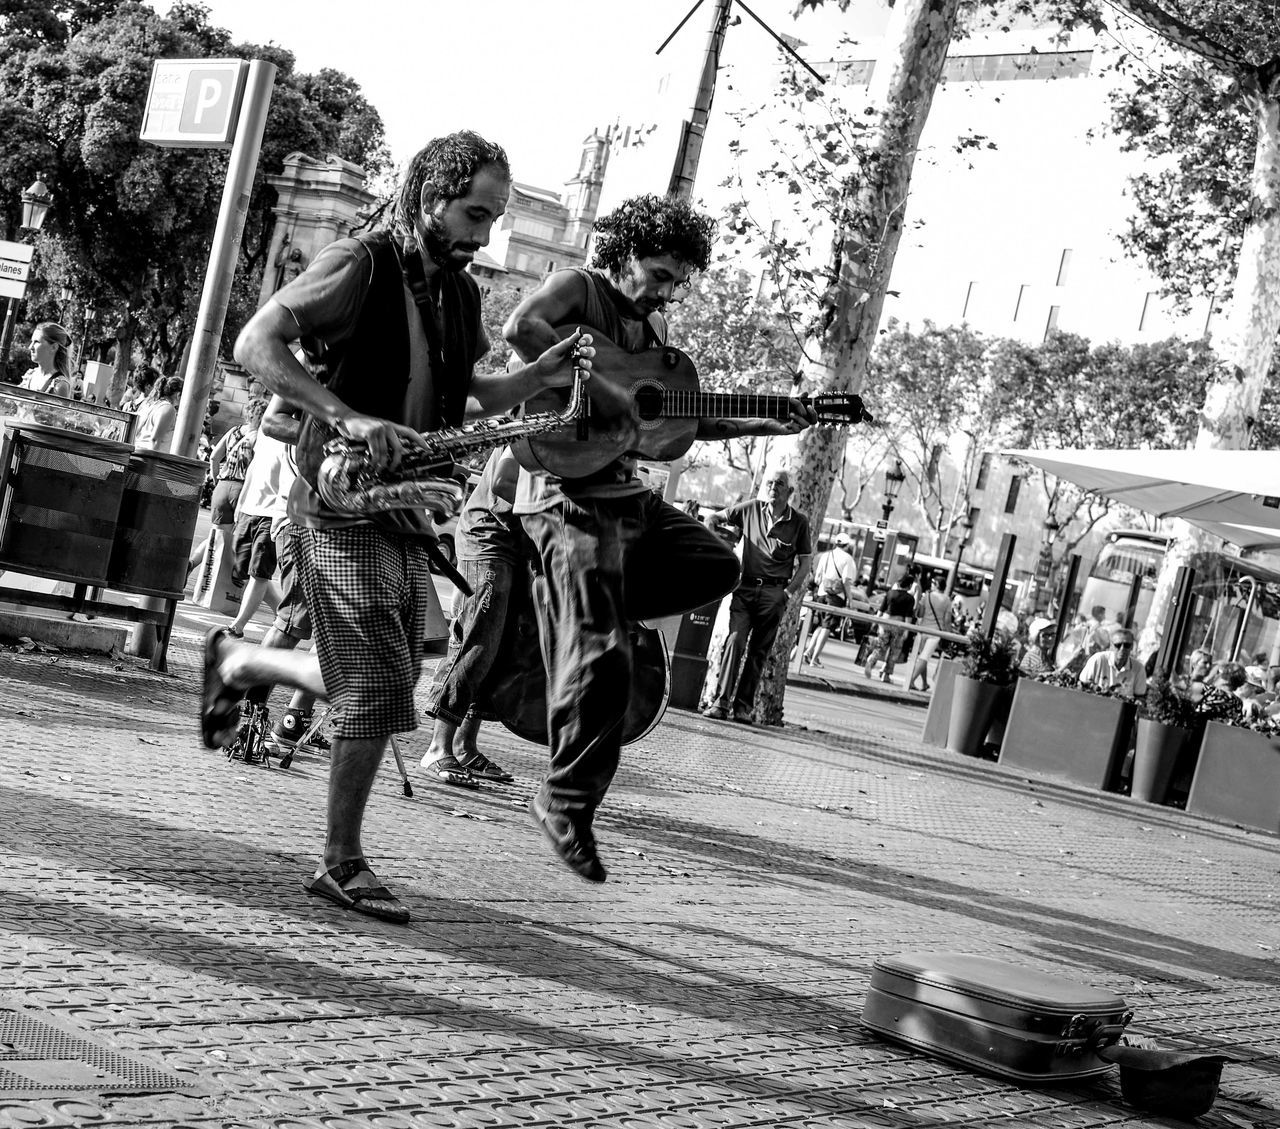 street performers are a main attraction on the streets of Barcelona, where talented artists perform for tourists and can earn some return and appreciation Capture The Moment The Photojournalist - 2016 EyeEm Awards Feel The Journey Original Experiences Natural Light Portrait Fine Art Photography Music Brings Us Together capturing motion Snap A Stranger